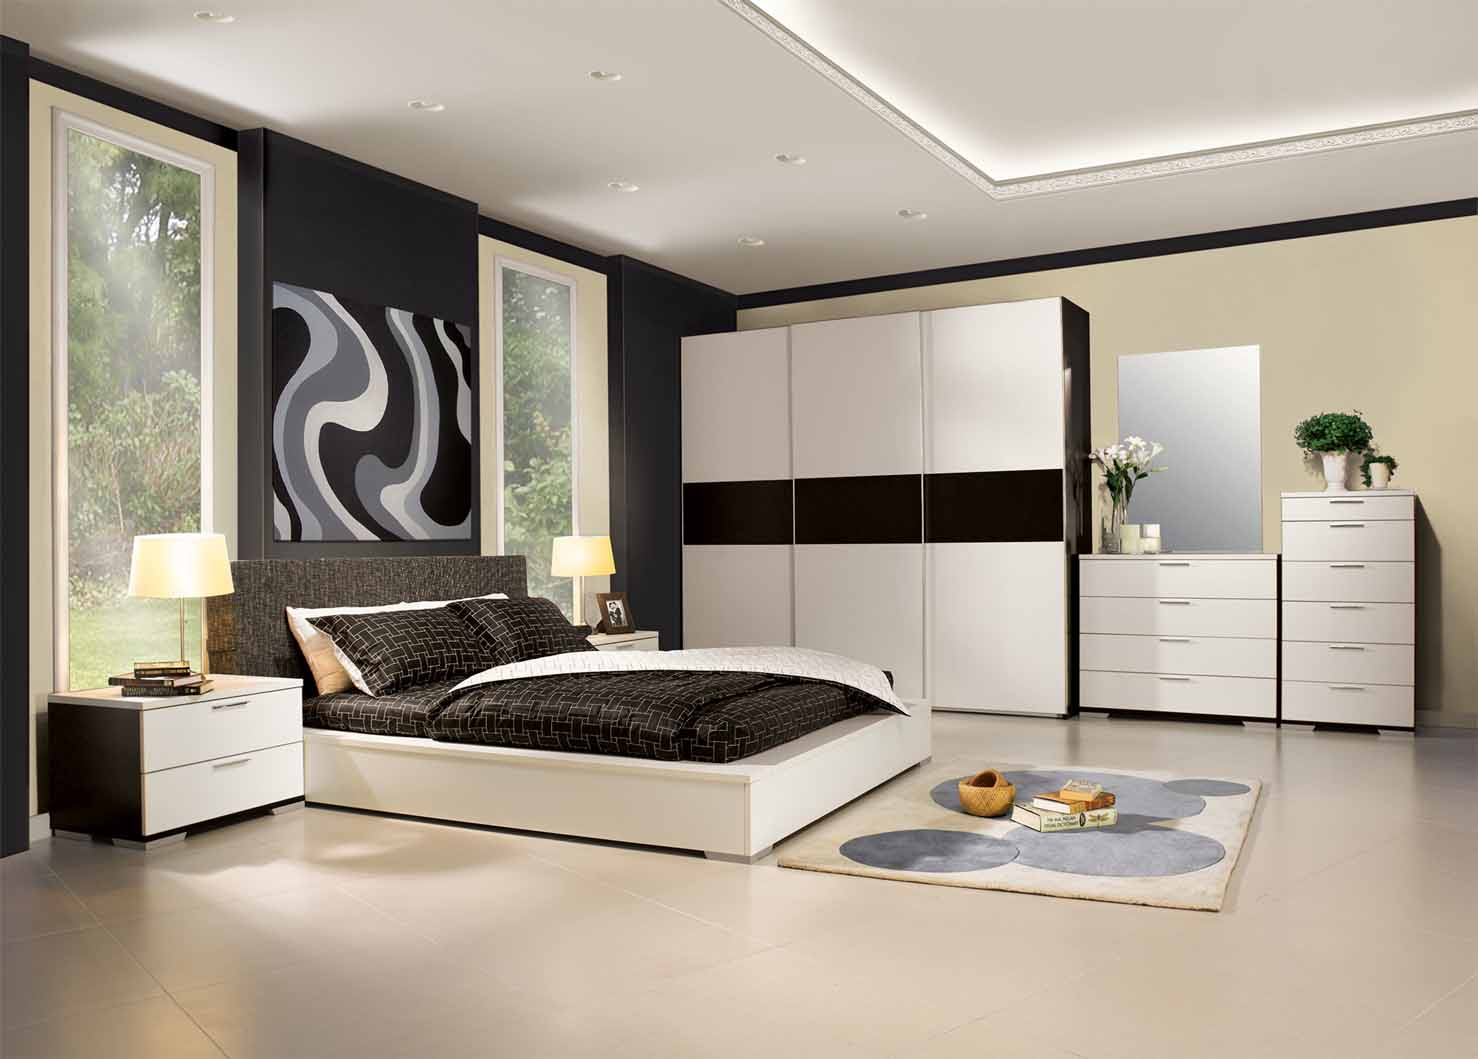 Bedroom Decorating Ideas: Decoration Ideas For Apartments